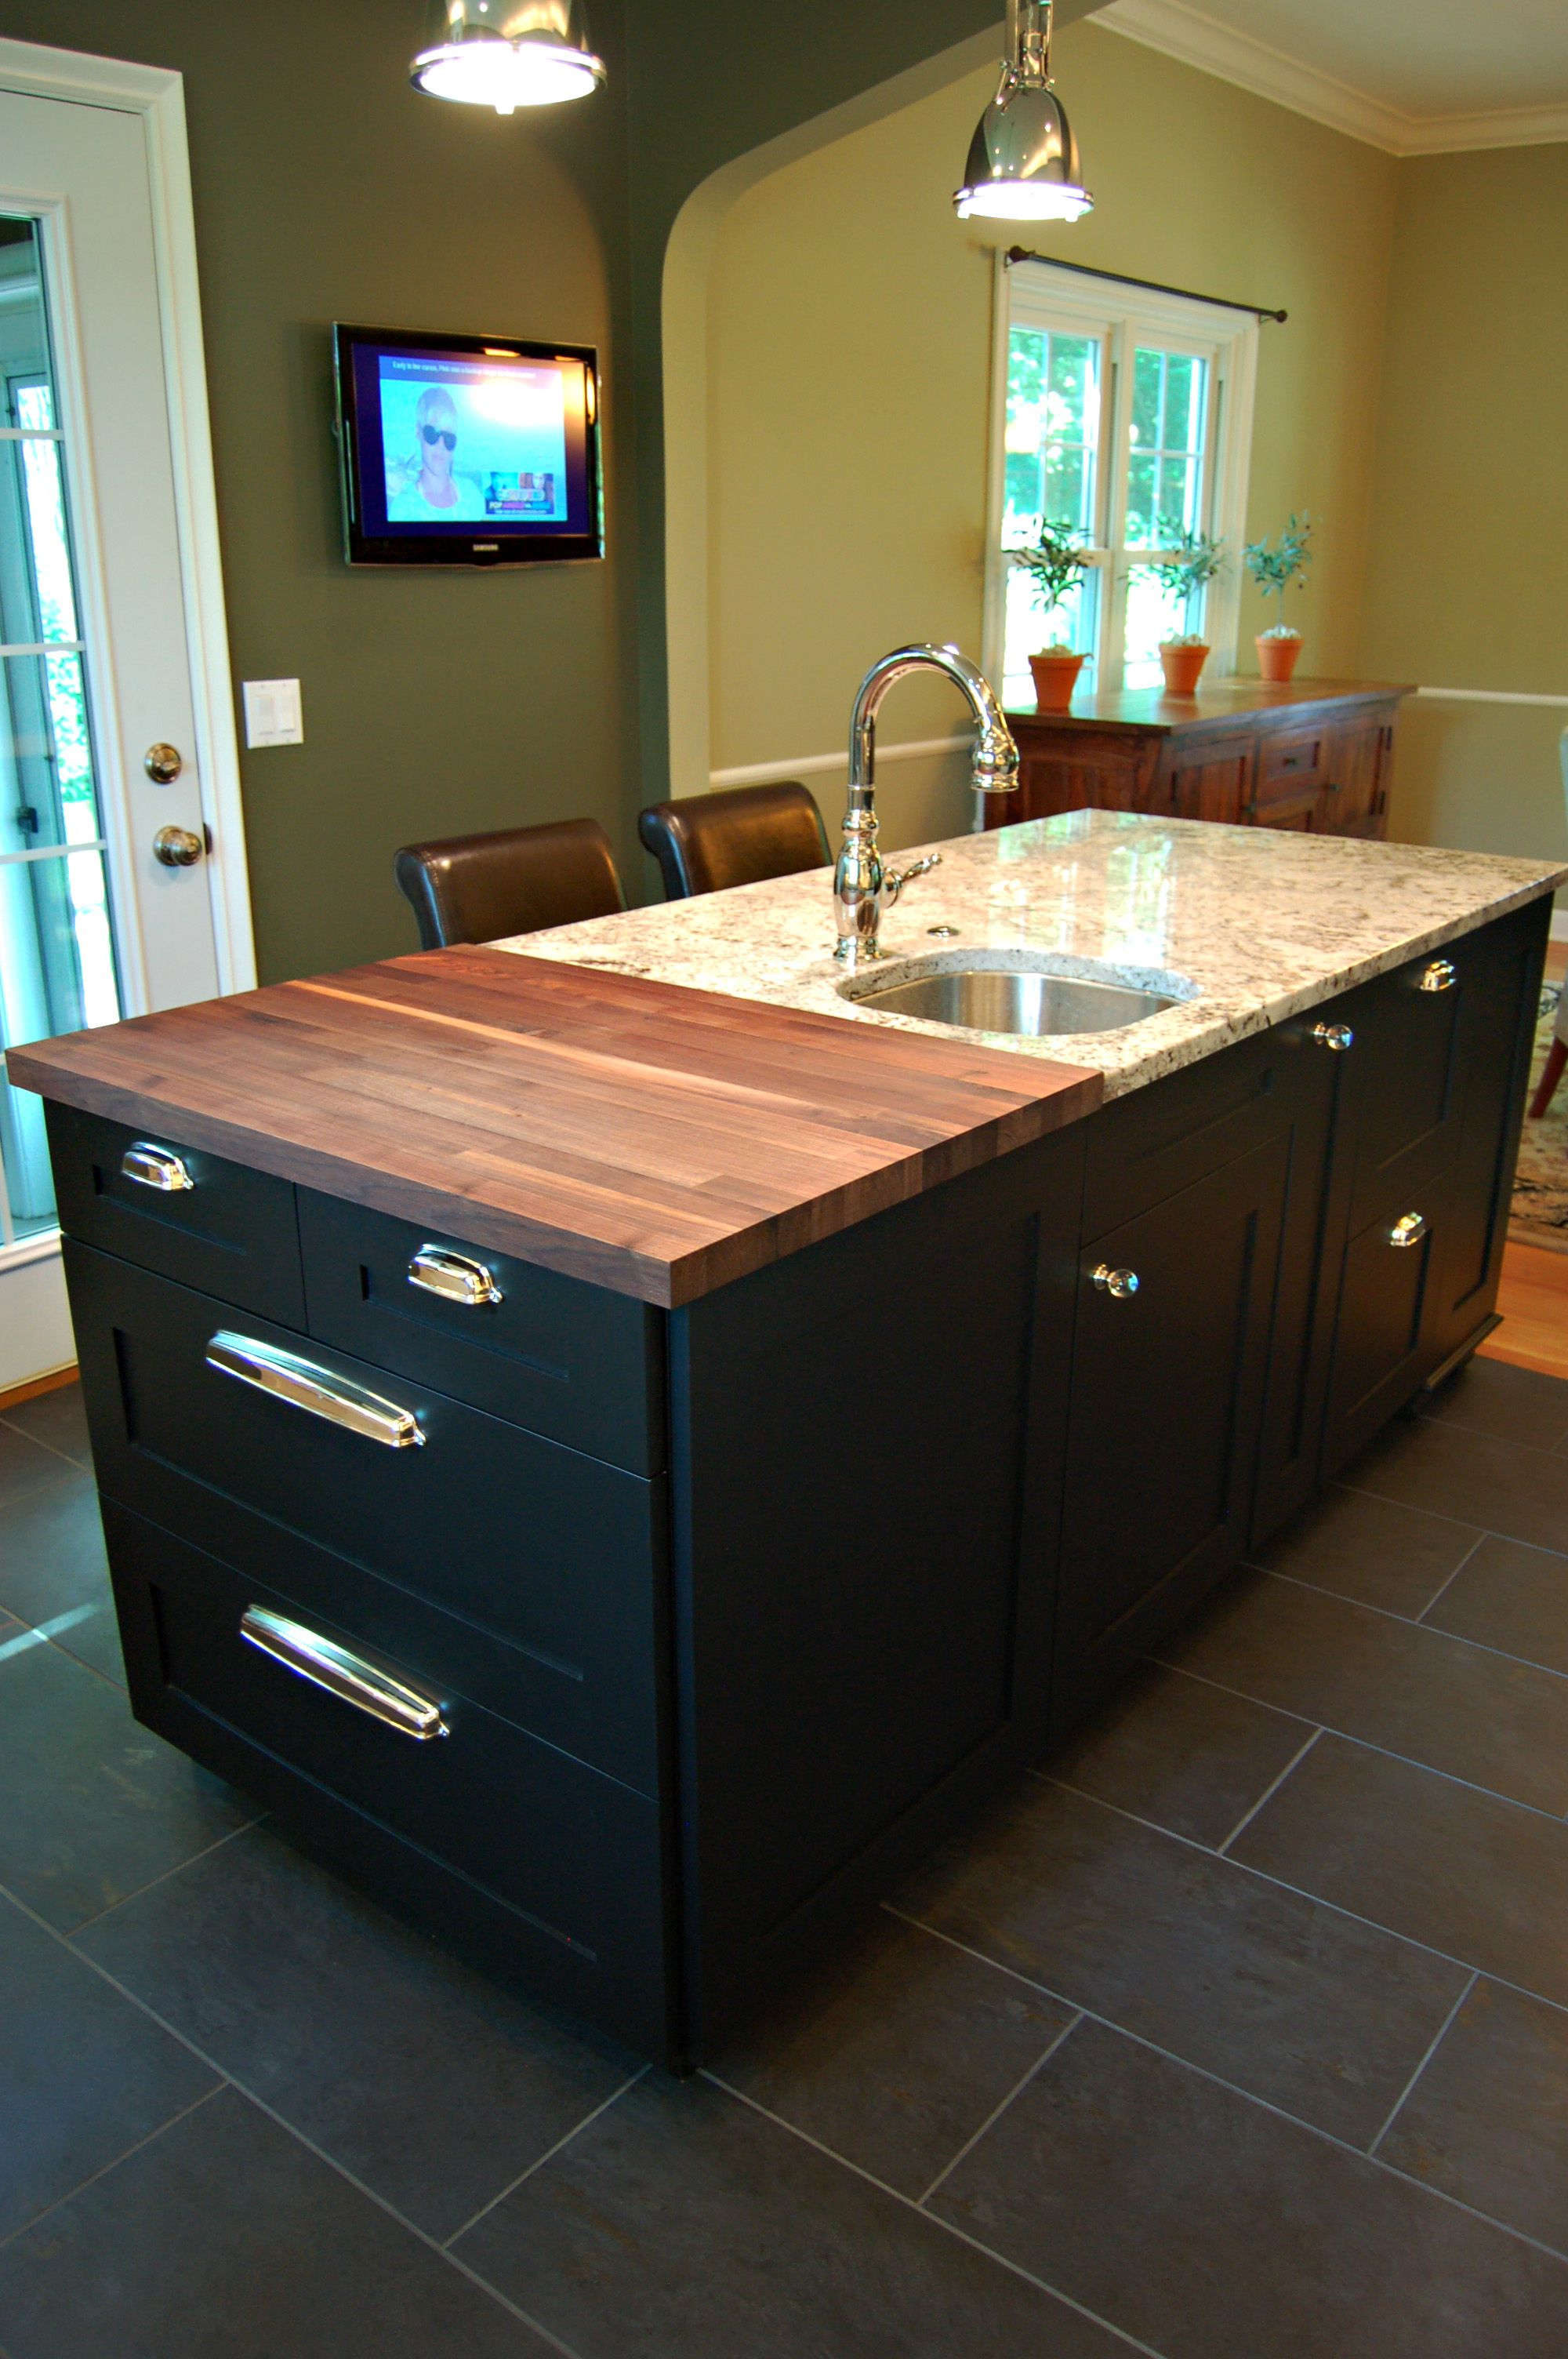 Walnut Butcher Block Island With Black Painted Cabinets And